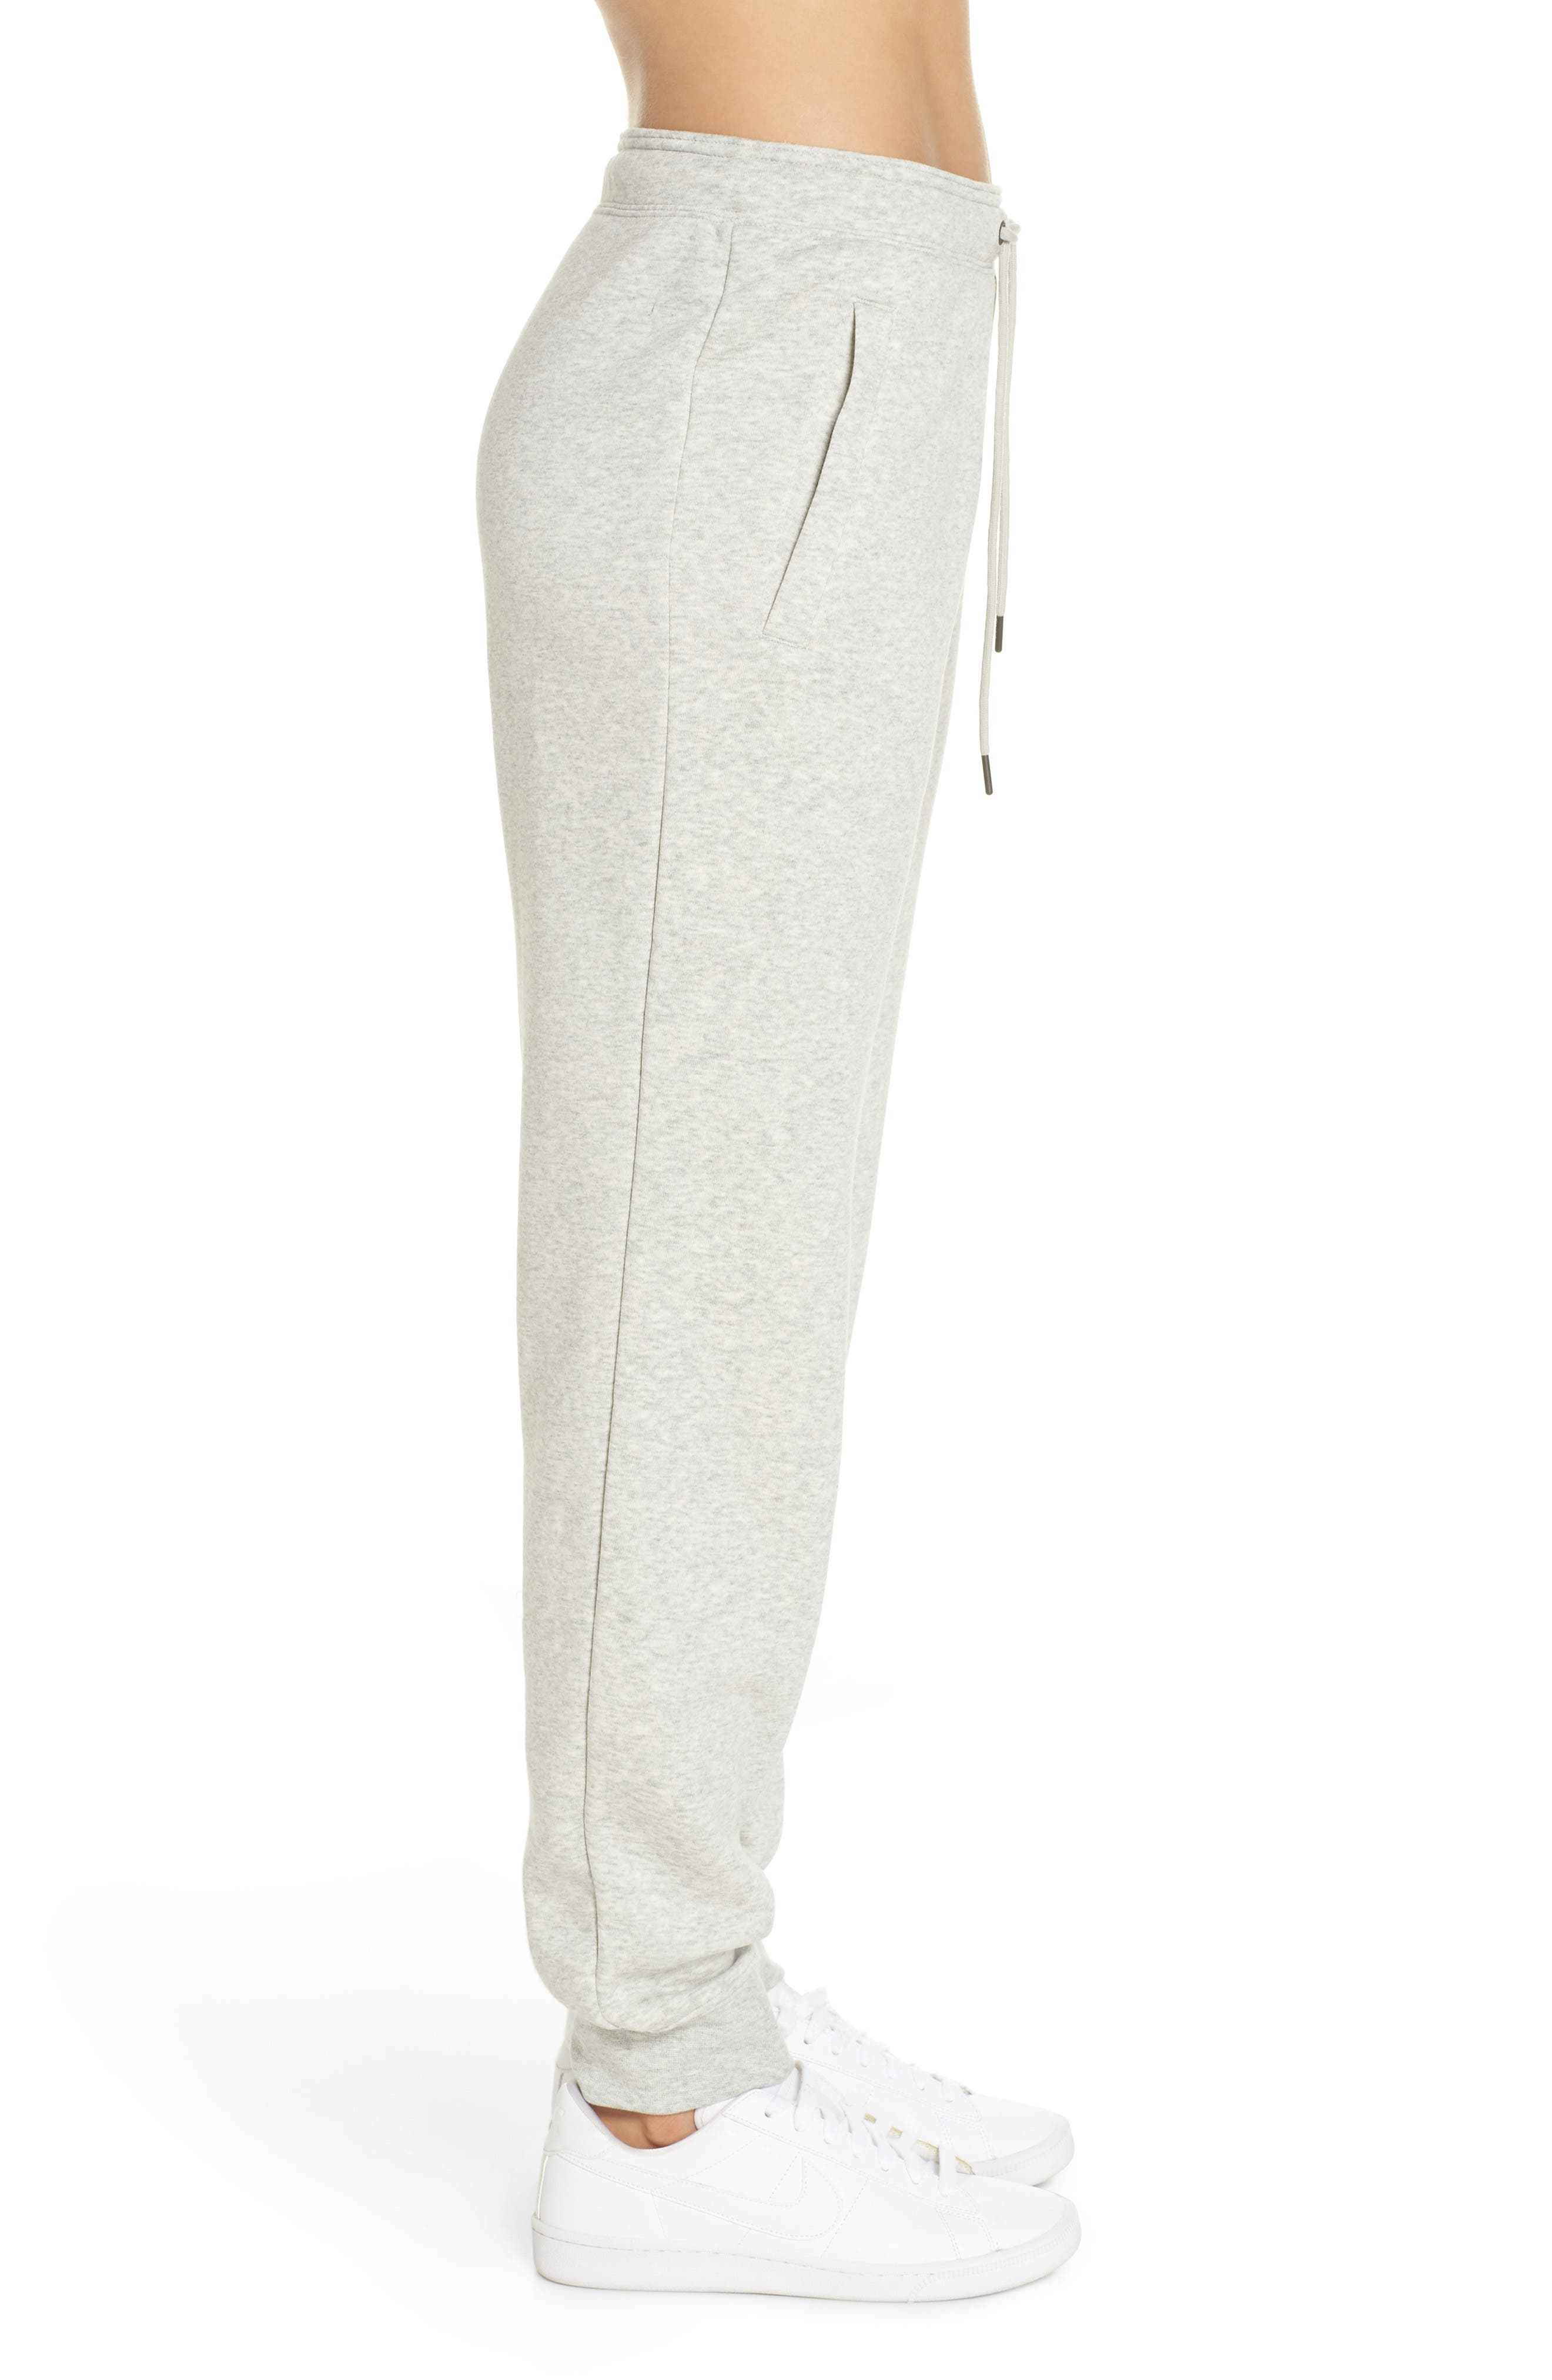 NIKE, Sportswear Rally Jogger Pants, Alternate thumbnail 4, color, GREY HEATHER/ PALE GREY/ WHITE